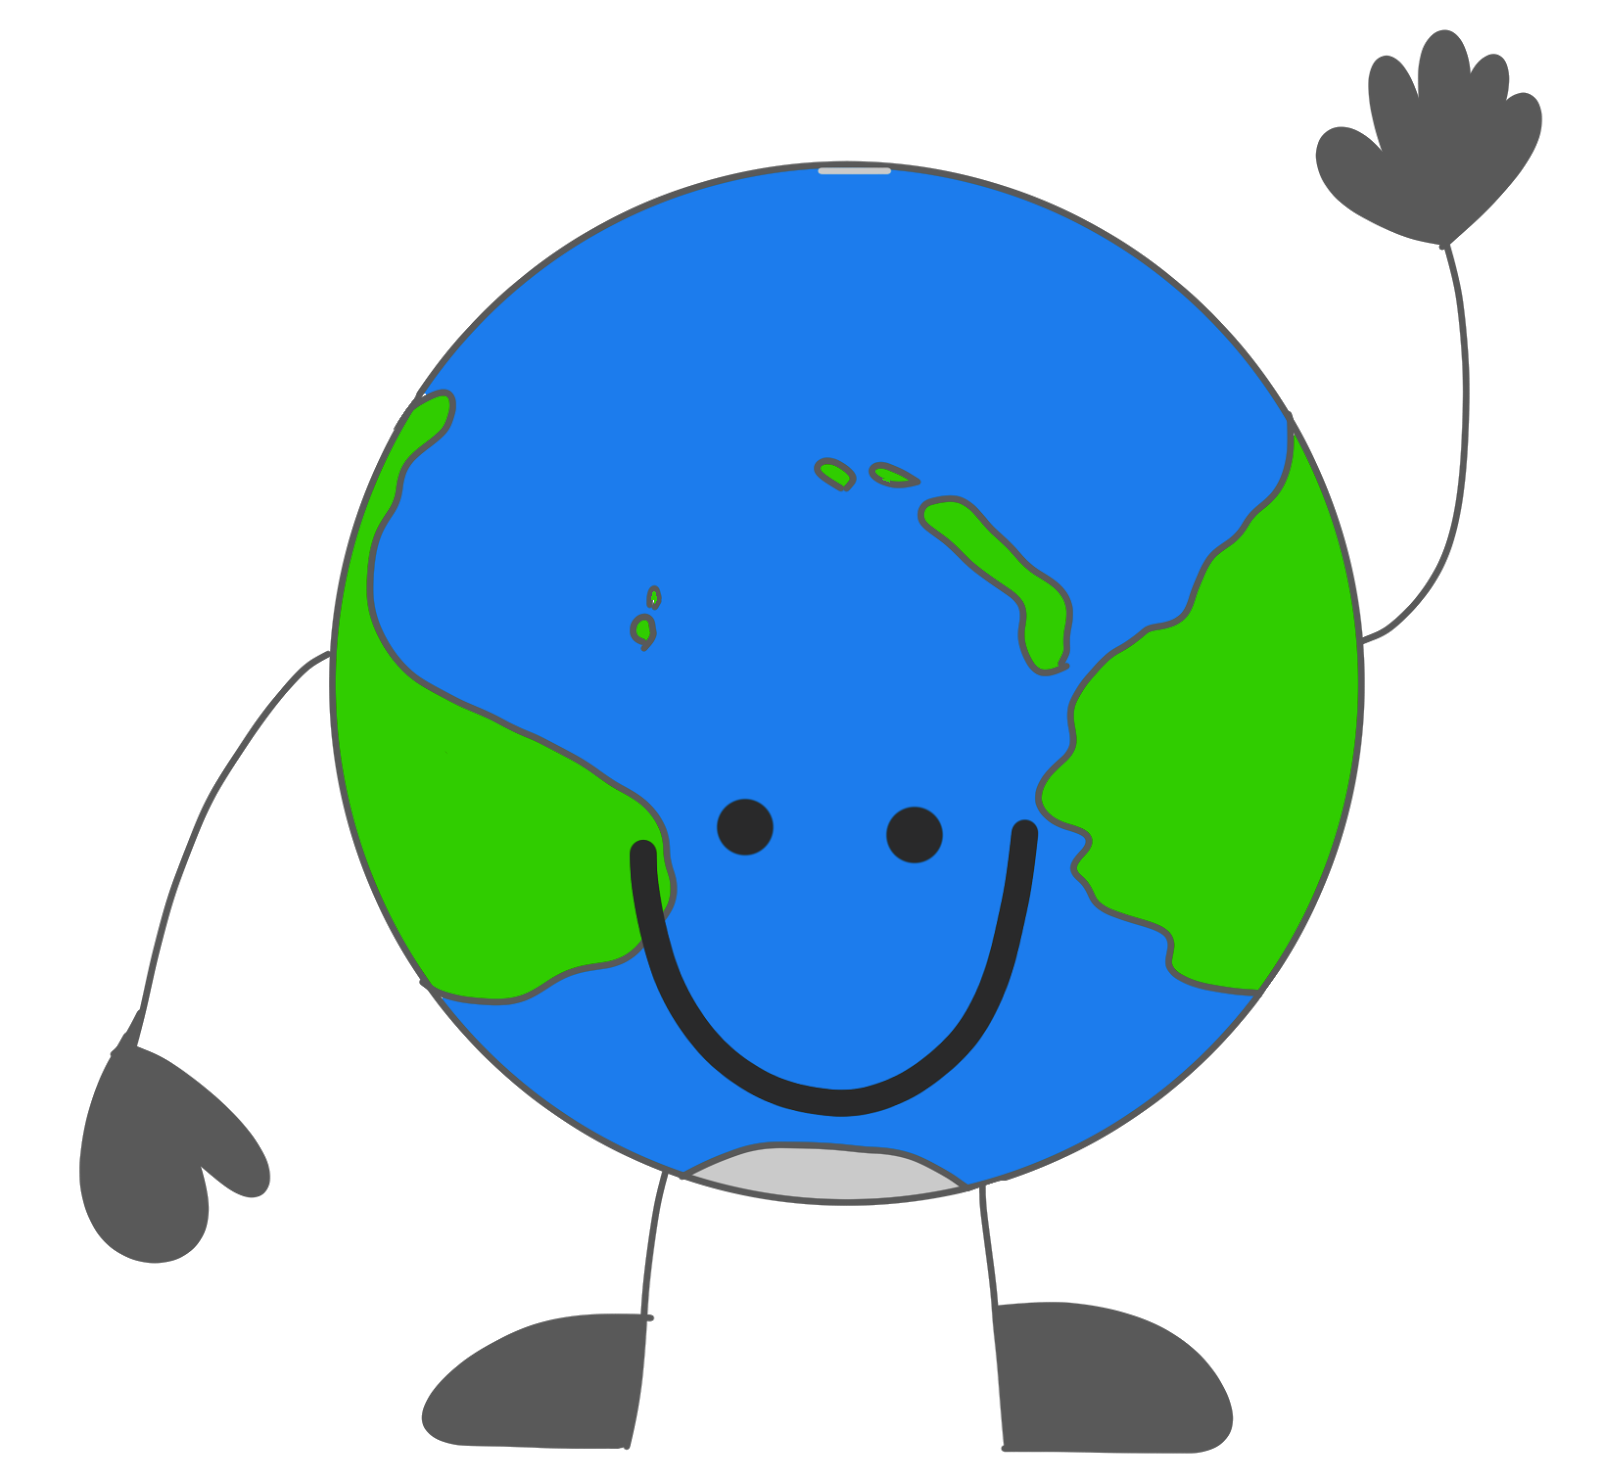 World clip art of earth